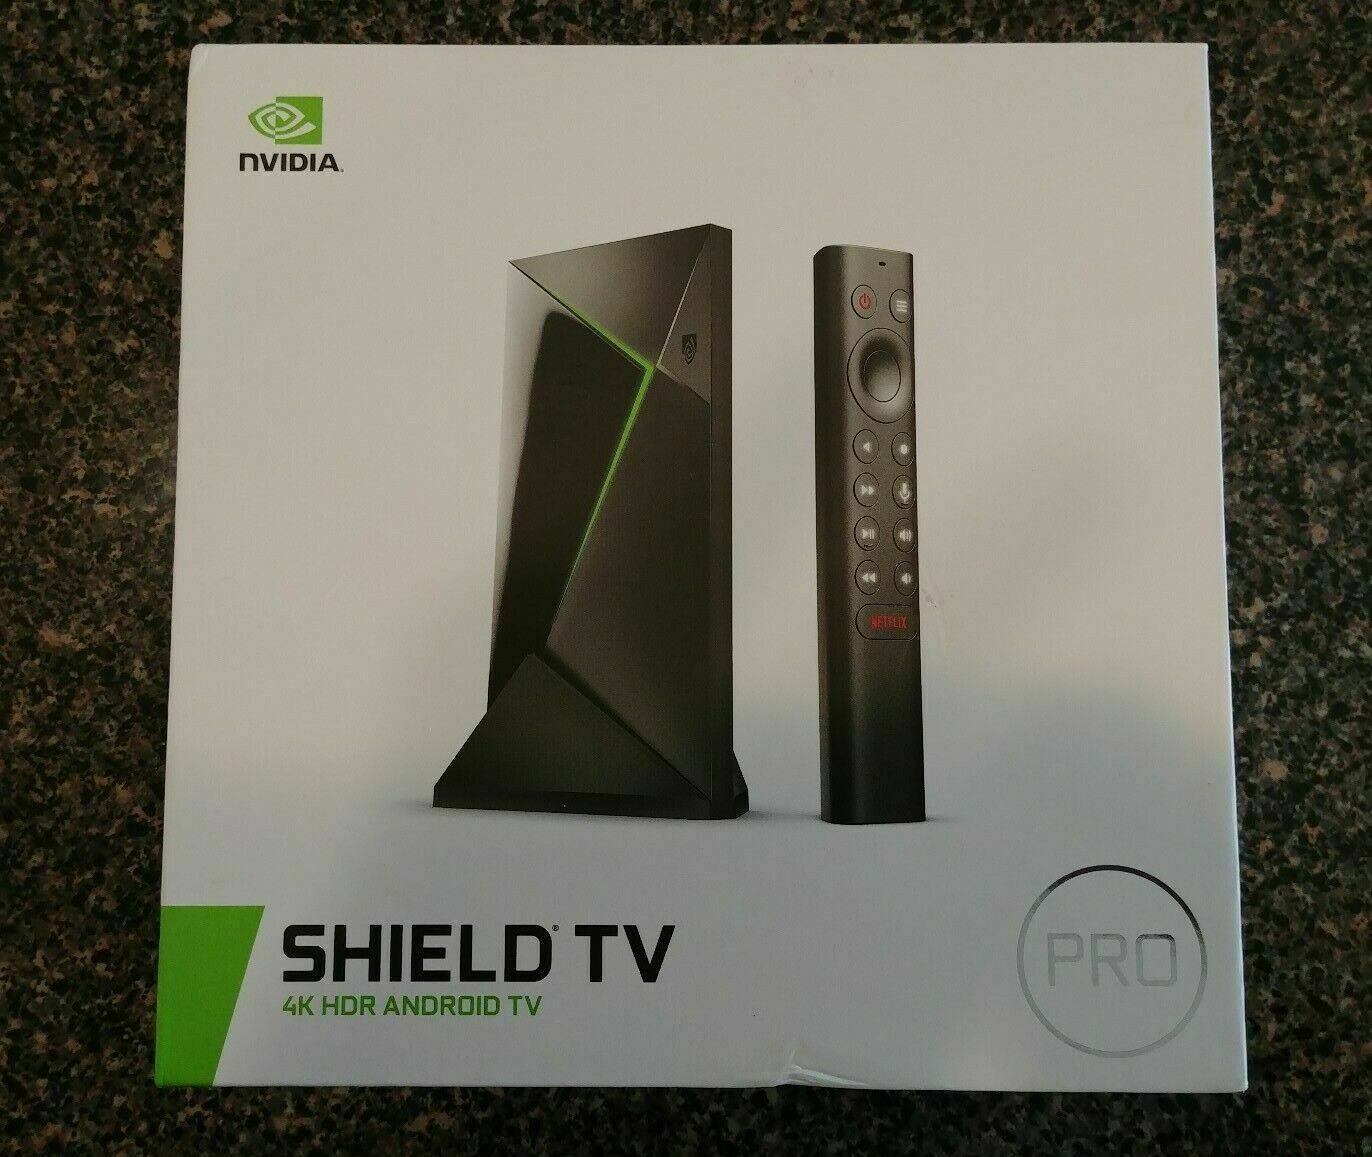 NVIDIA Shield Android TV Pro 4K HDR Streaming Media Player H